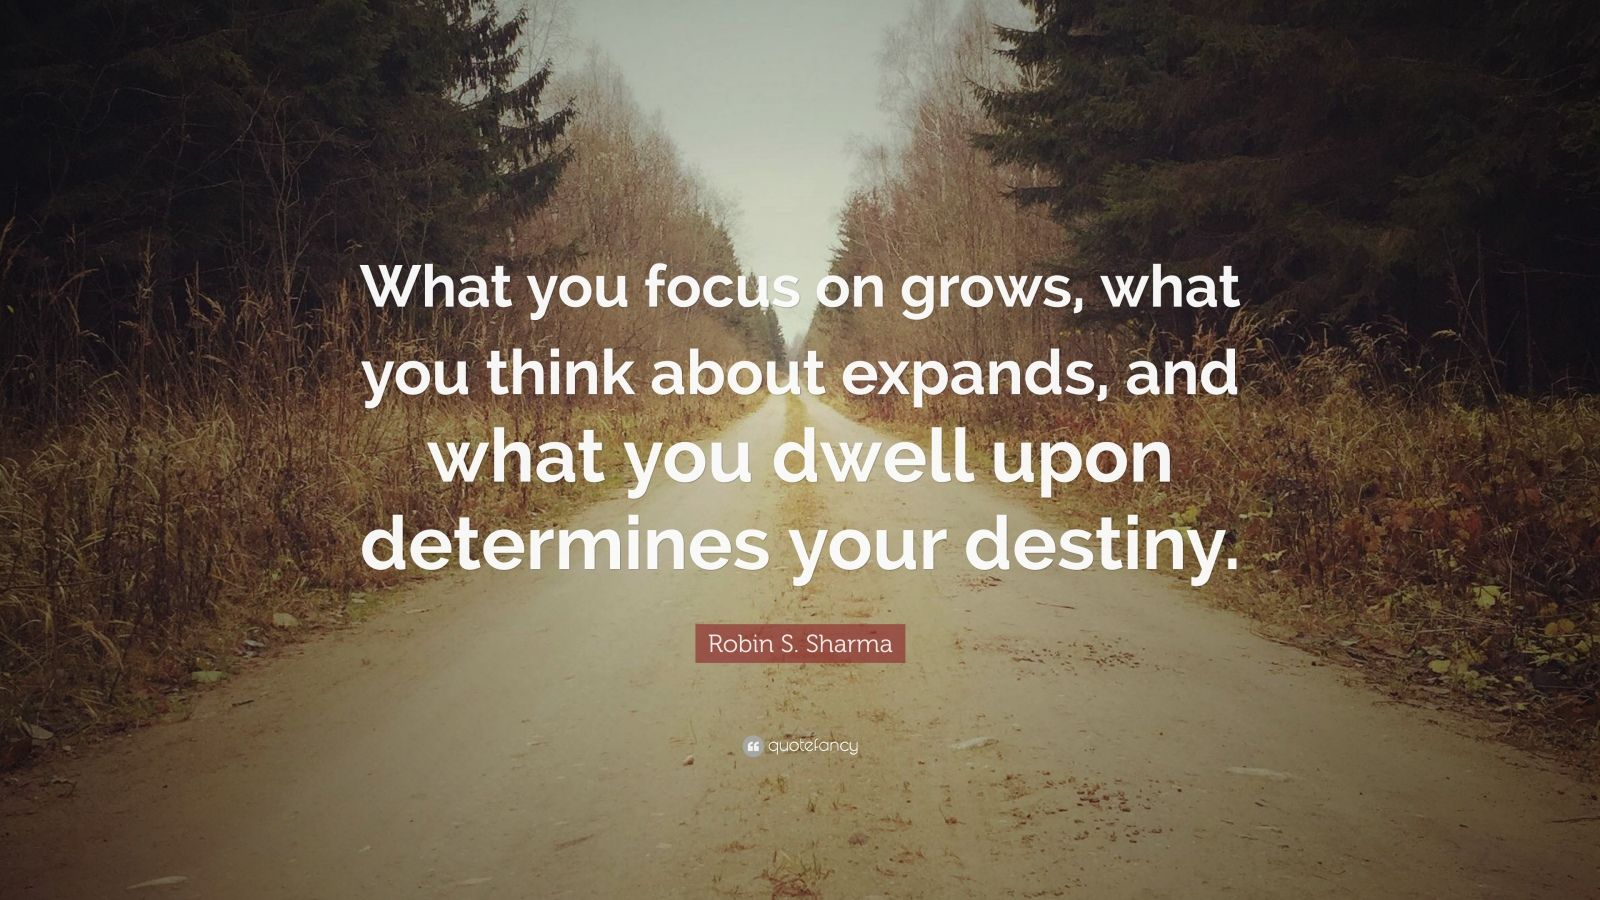 Theodore Roosevelt Quotes Wallpaper Robin S Sharma Quote What You Focus On Grows What You